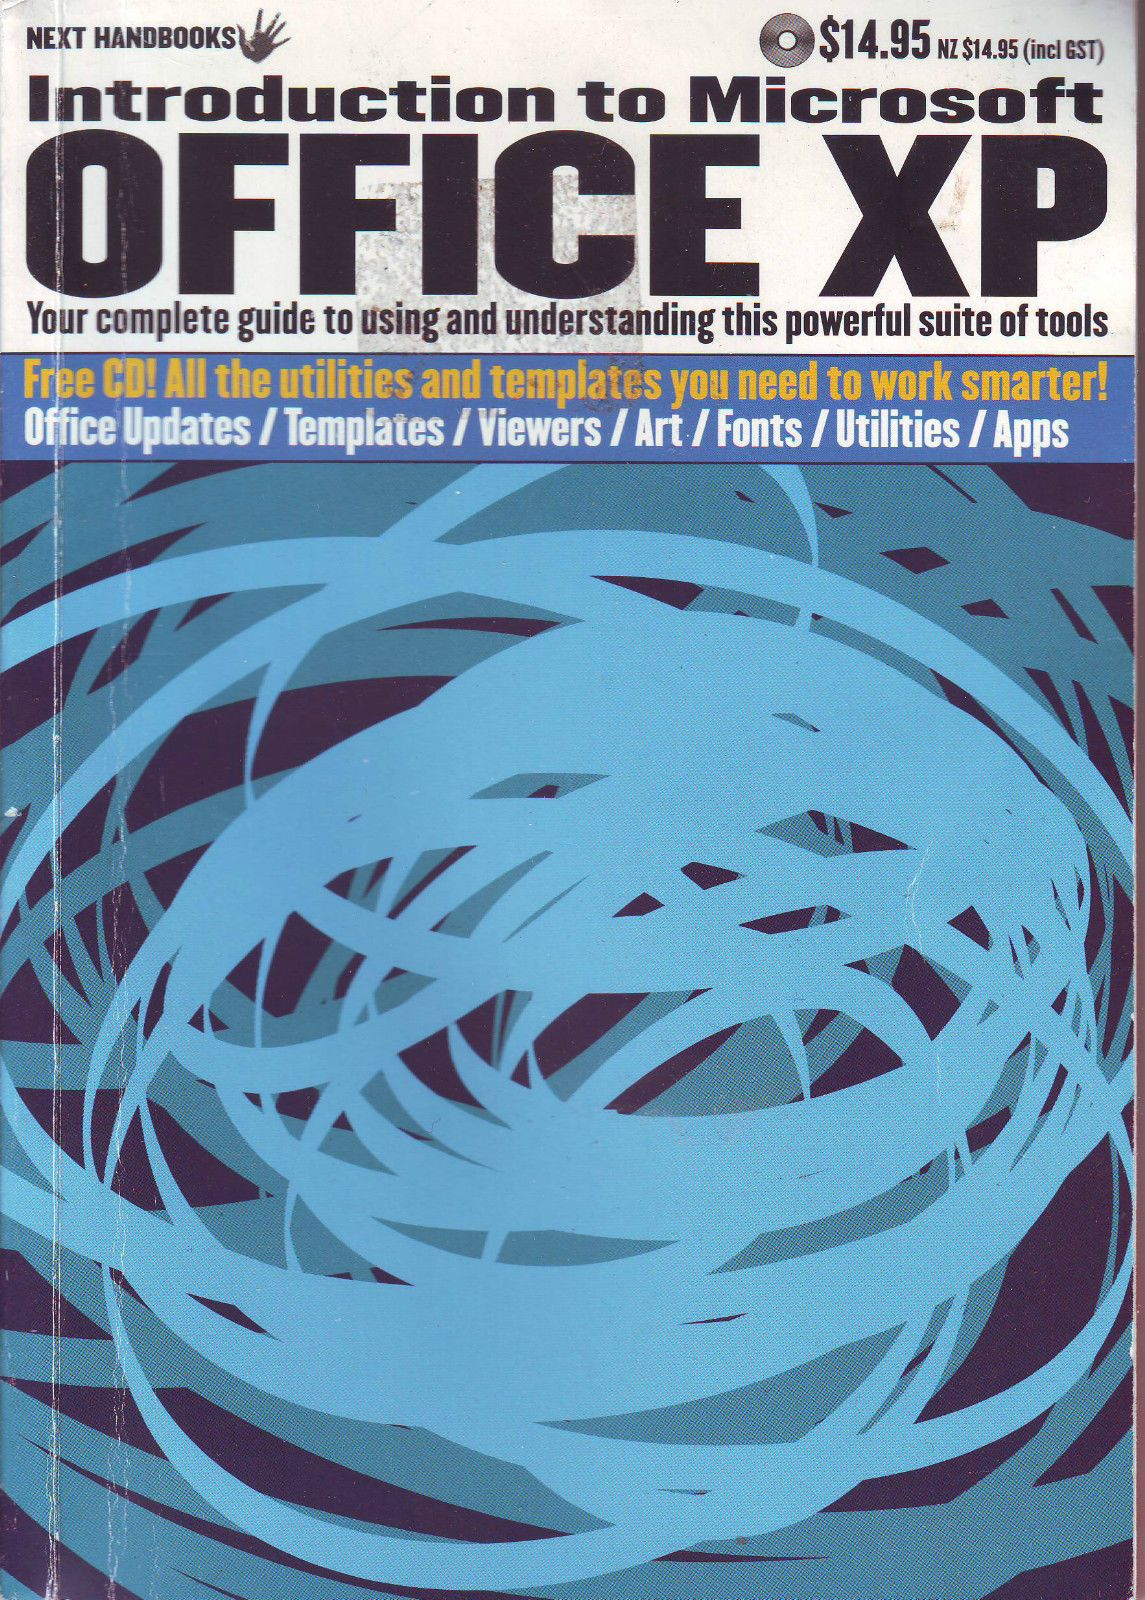 Introduction to Microsoft Office XP -- Somehow this cover art seems fitting..